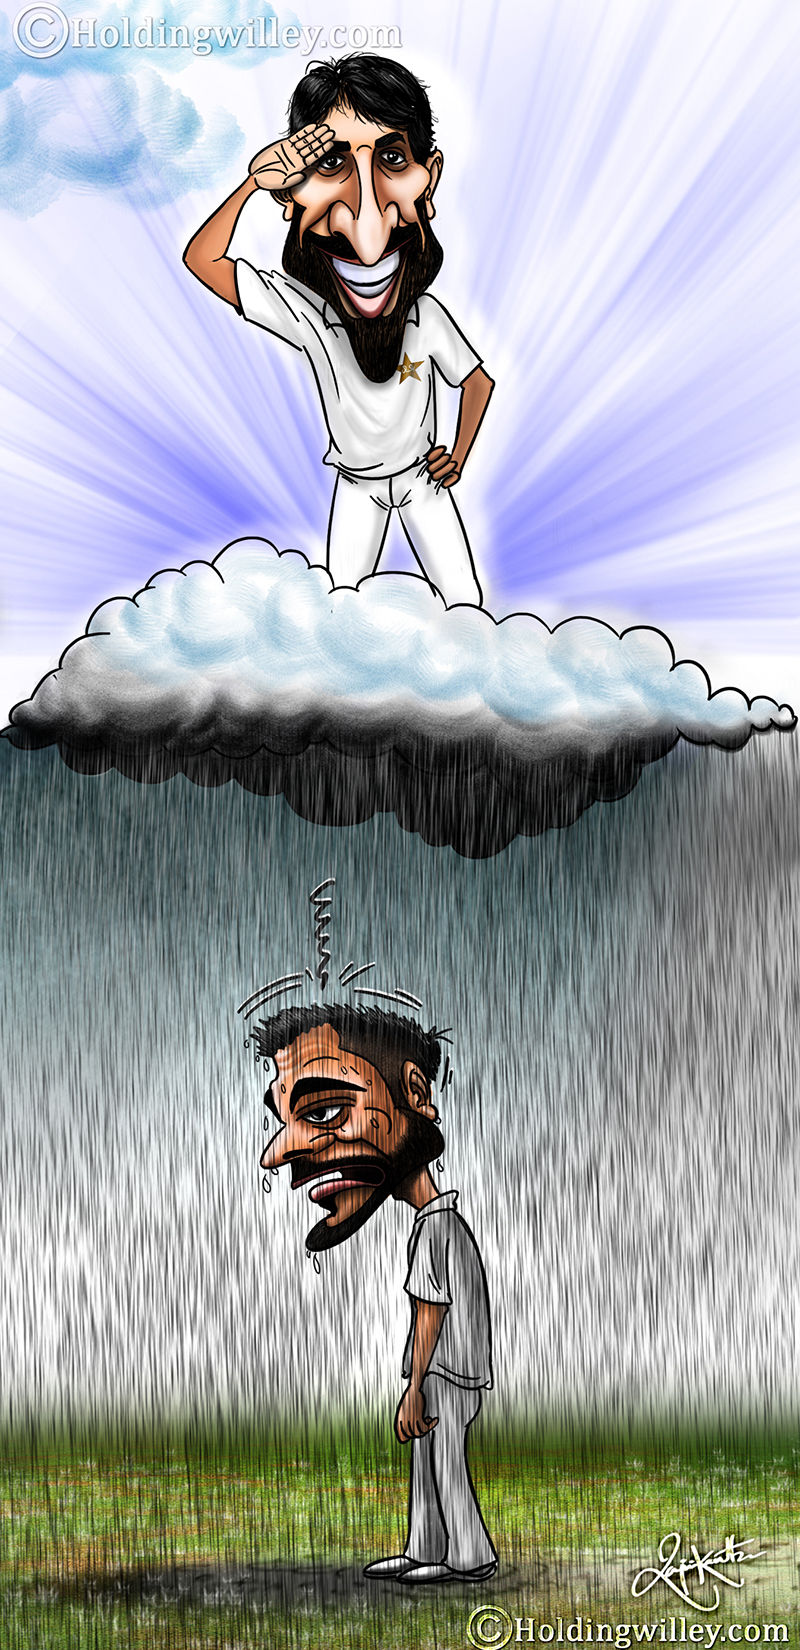 Misbah Ul Haq cartoon, virat kohli cartoon